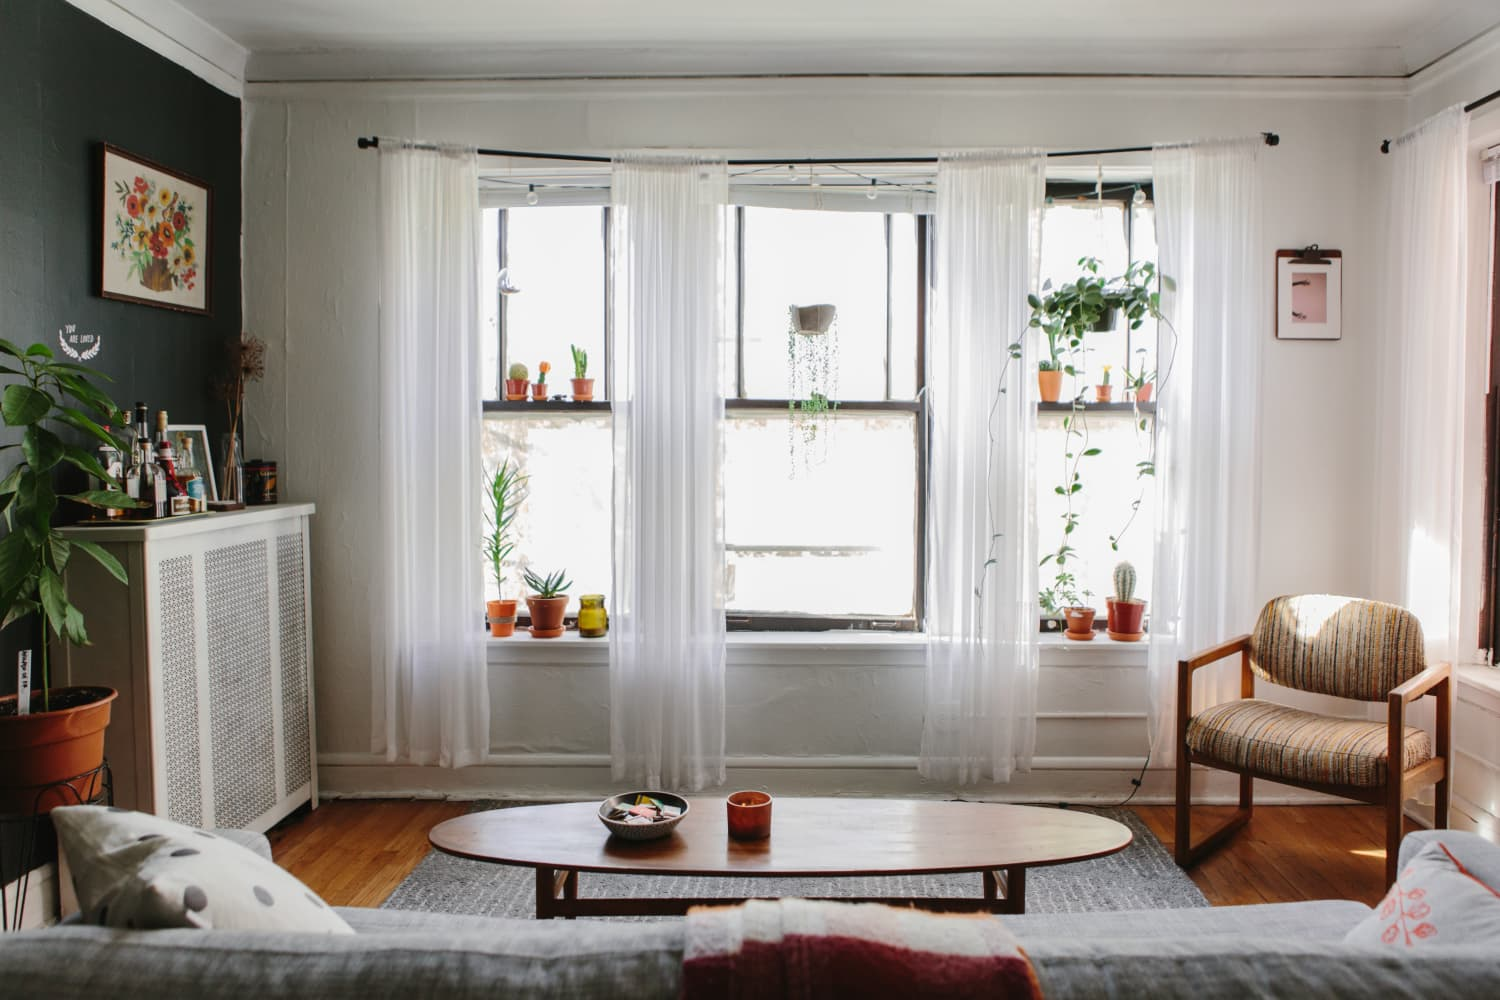 Overwhelmed By Clutter? Cleaning This One Spot Might Be The Key